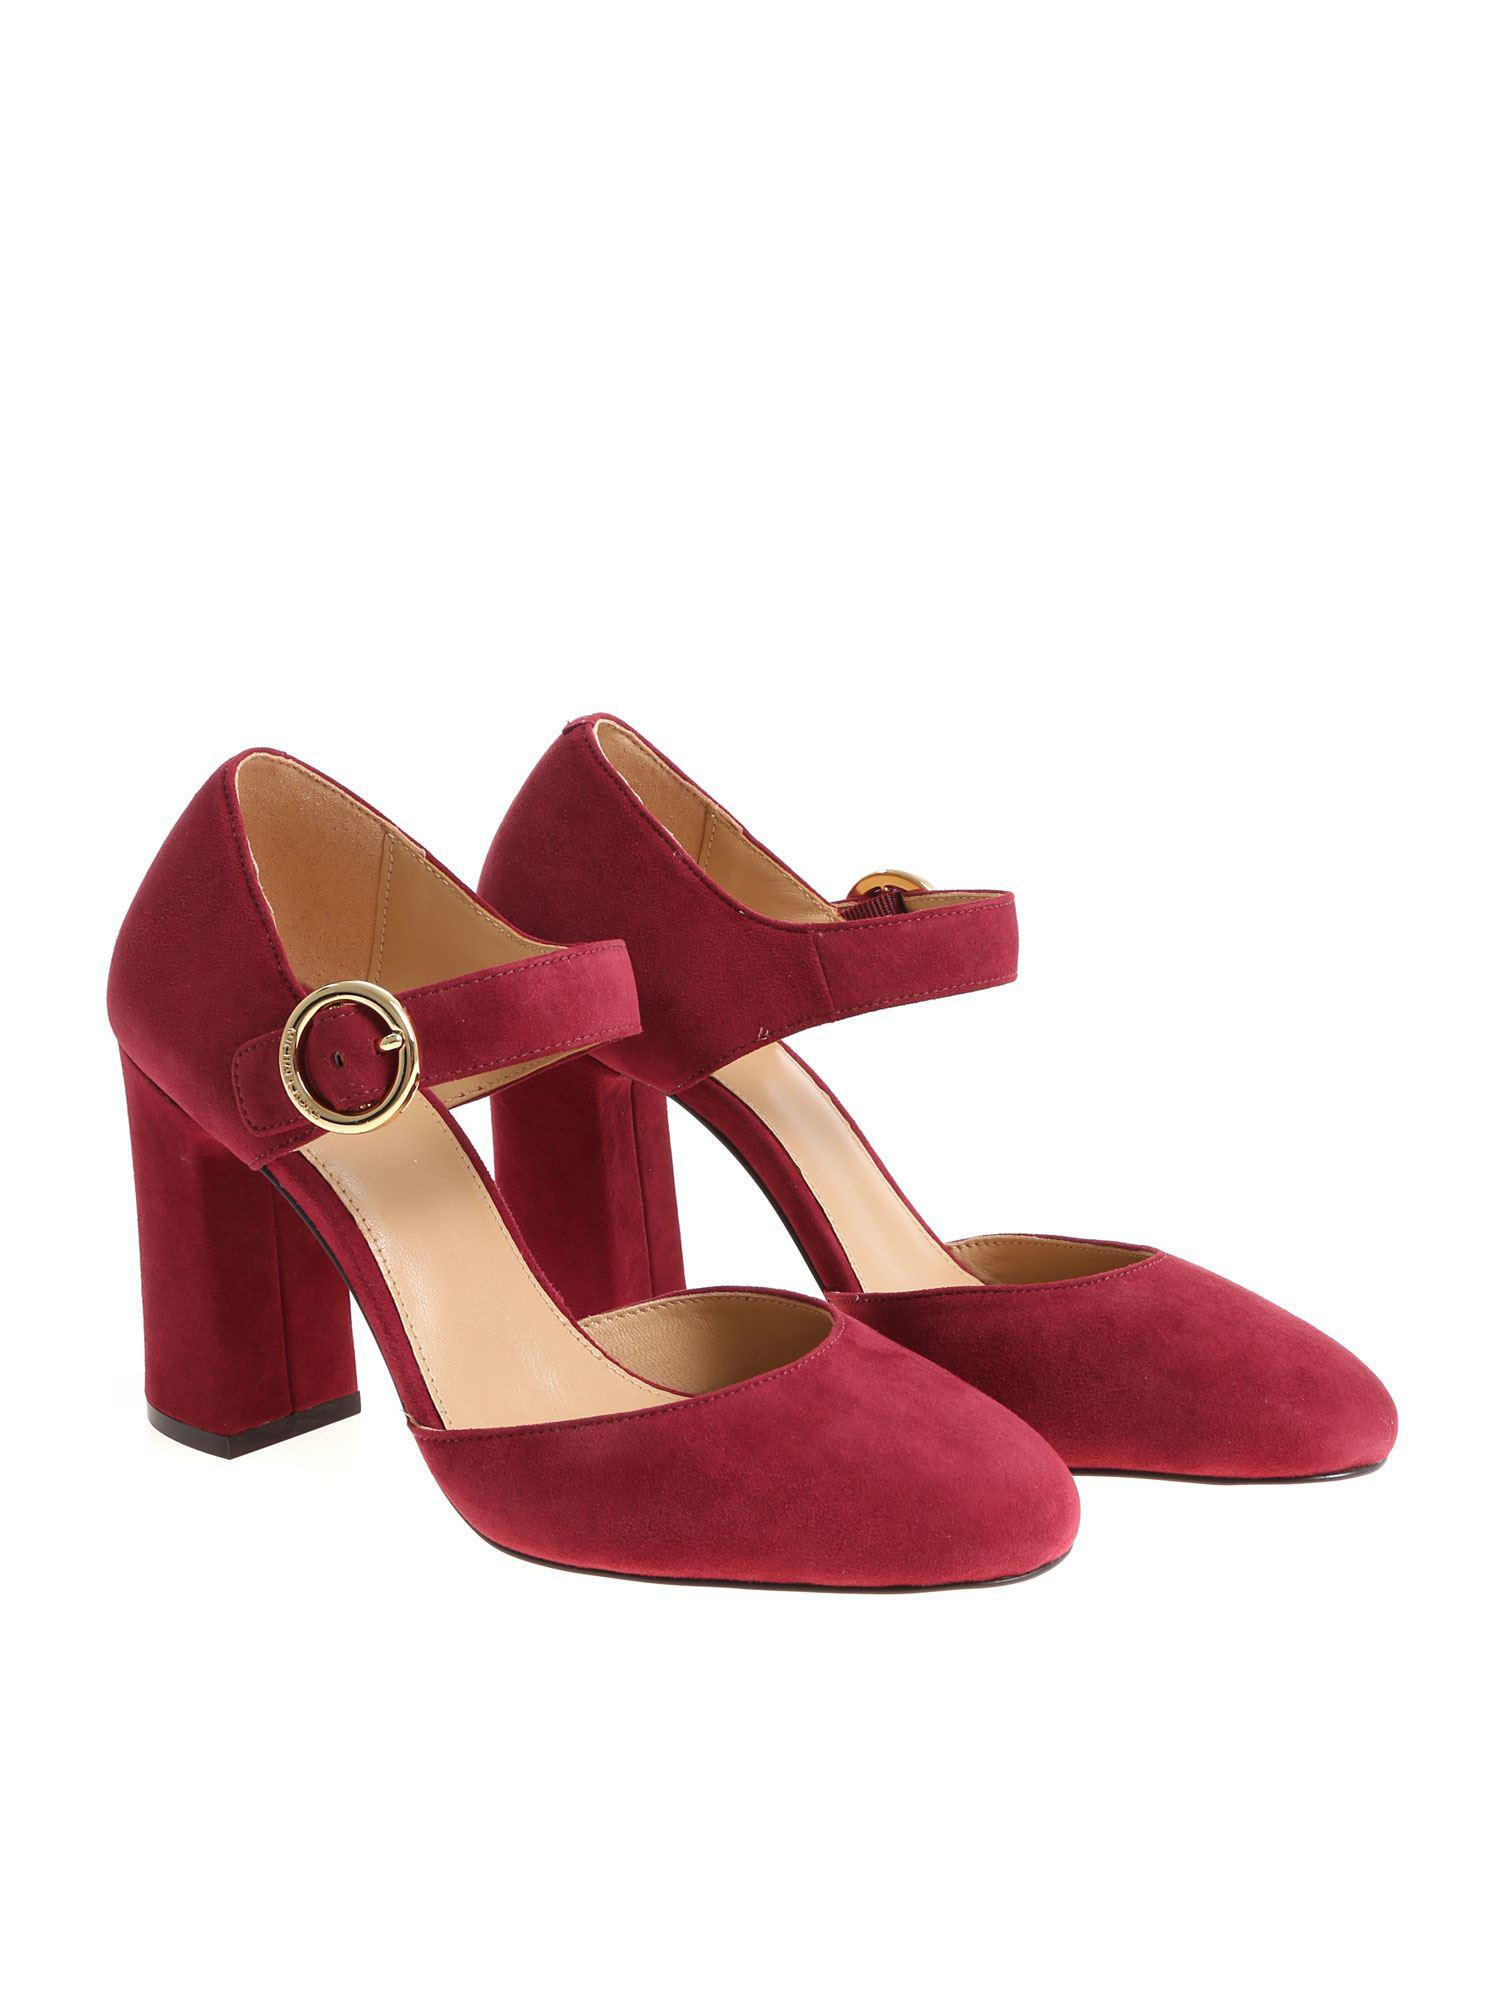 a0ded65a3994 Lyst - Michael Kors Burgundy Alana Pumps in Red